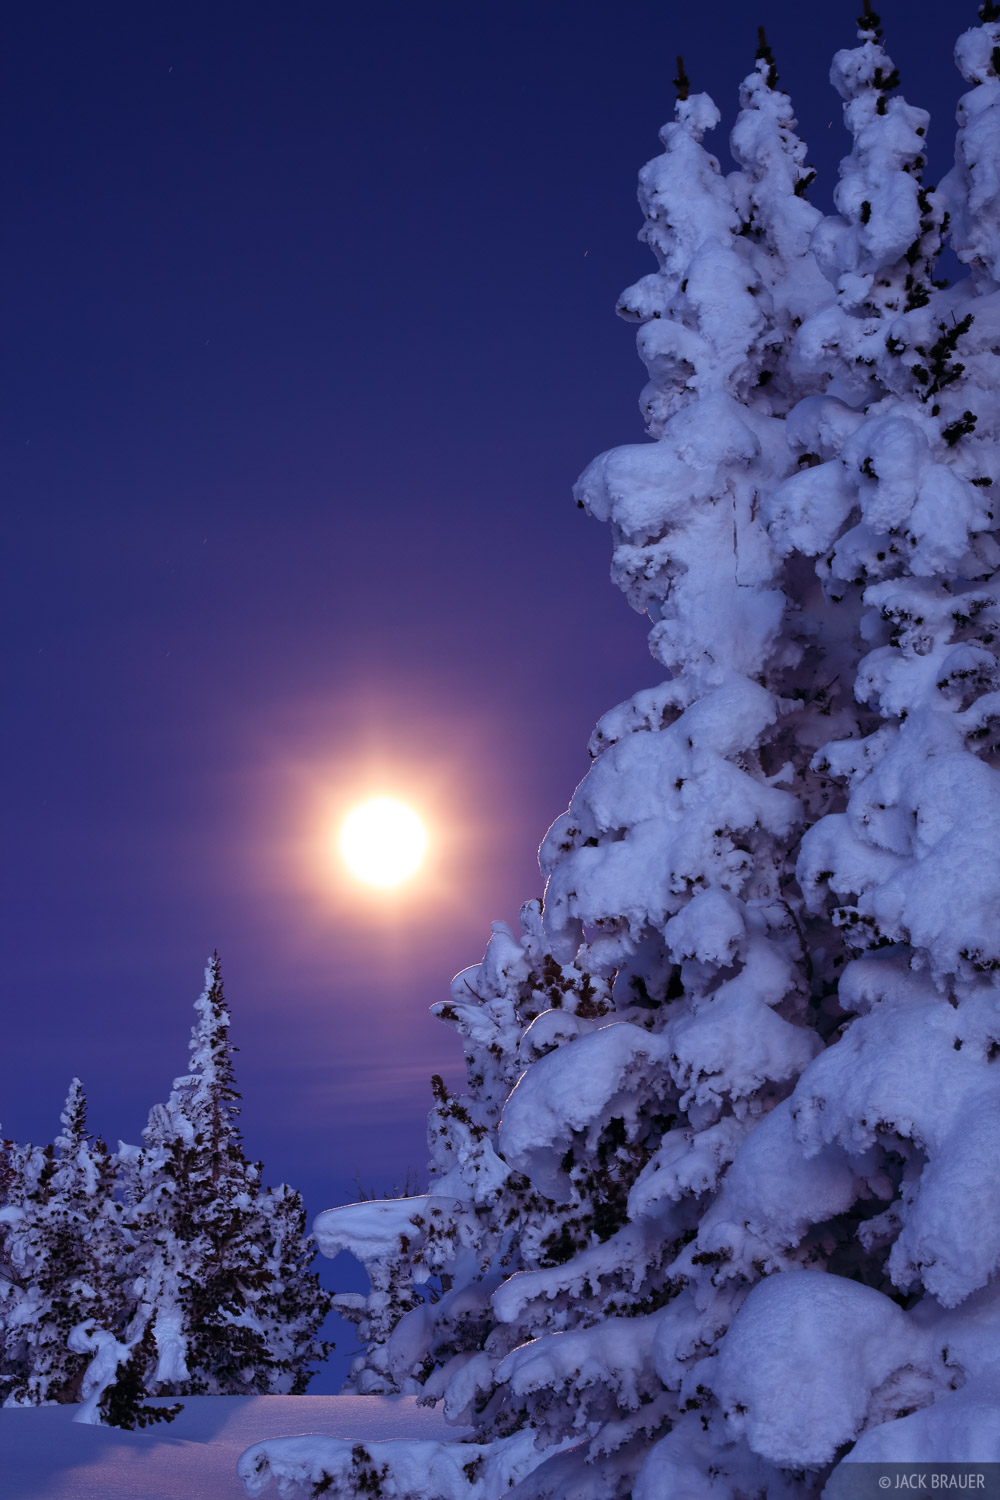 snow, snowy, moon, trees, wyoming, photo